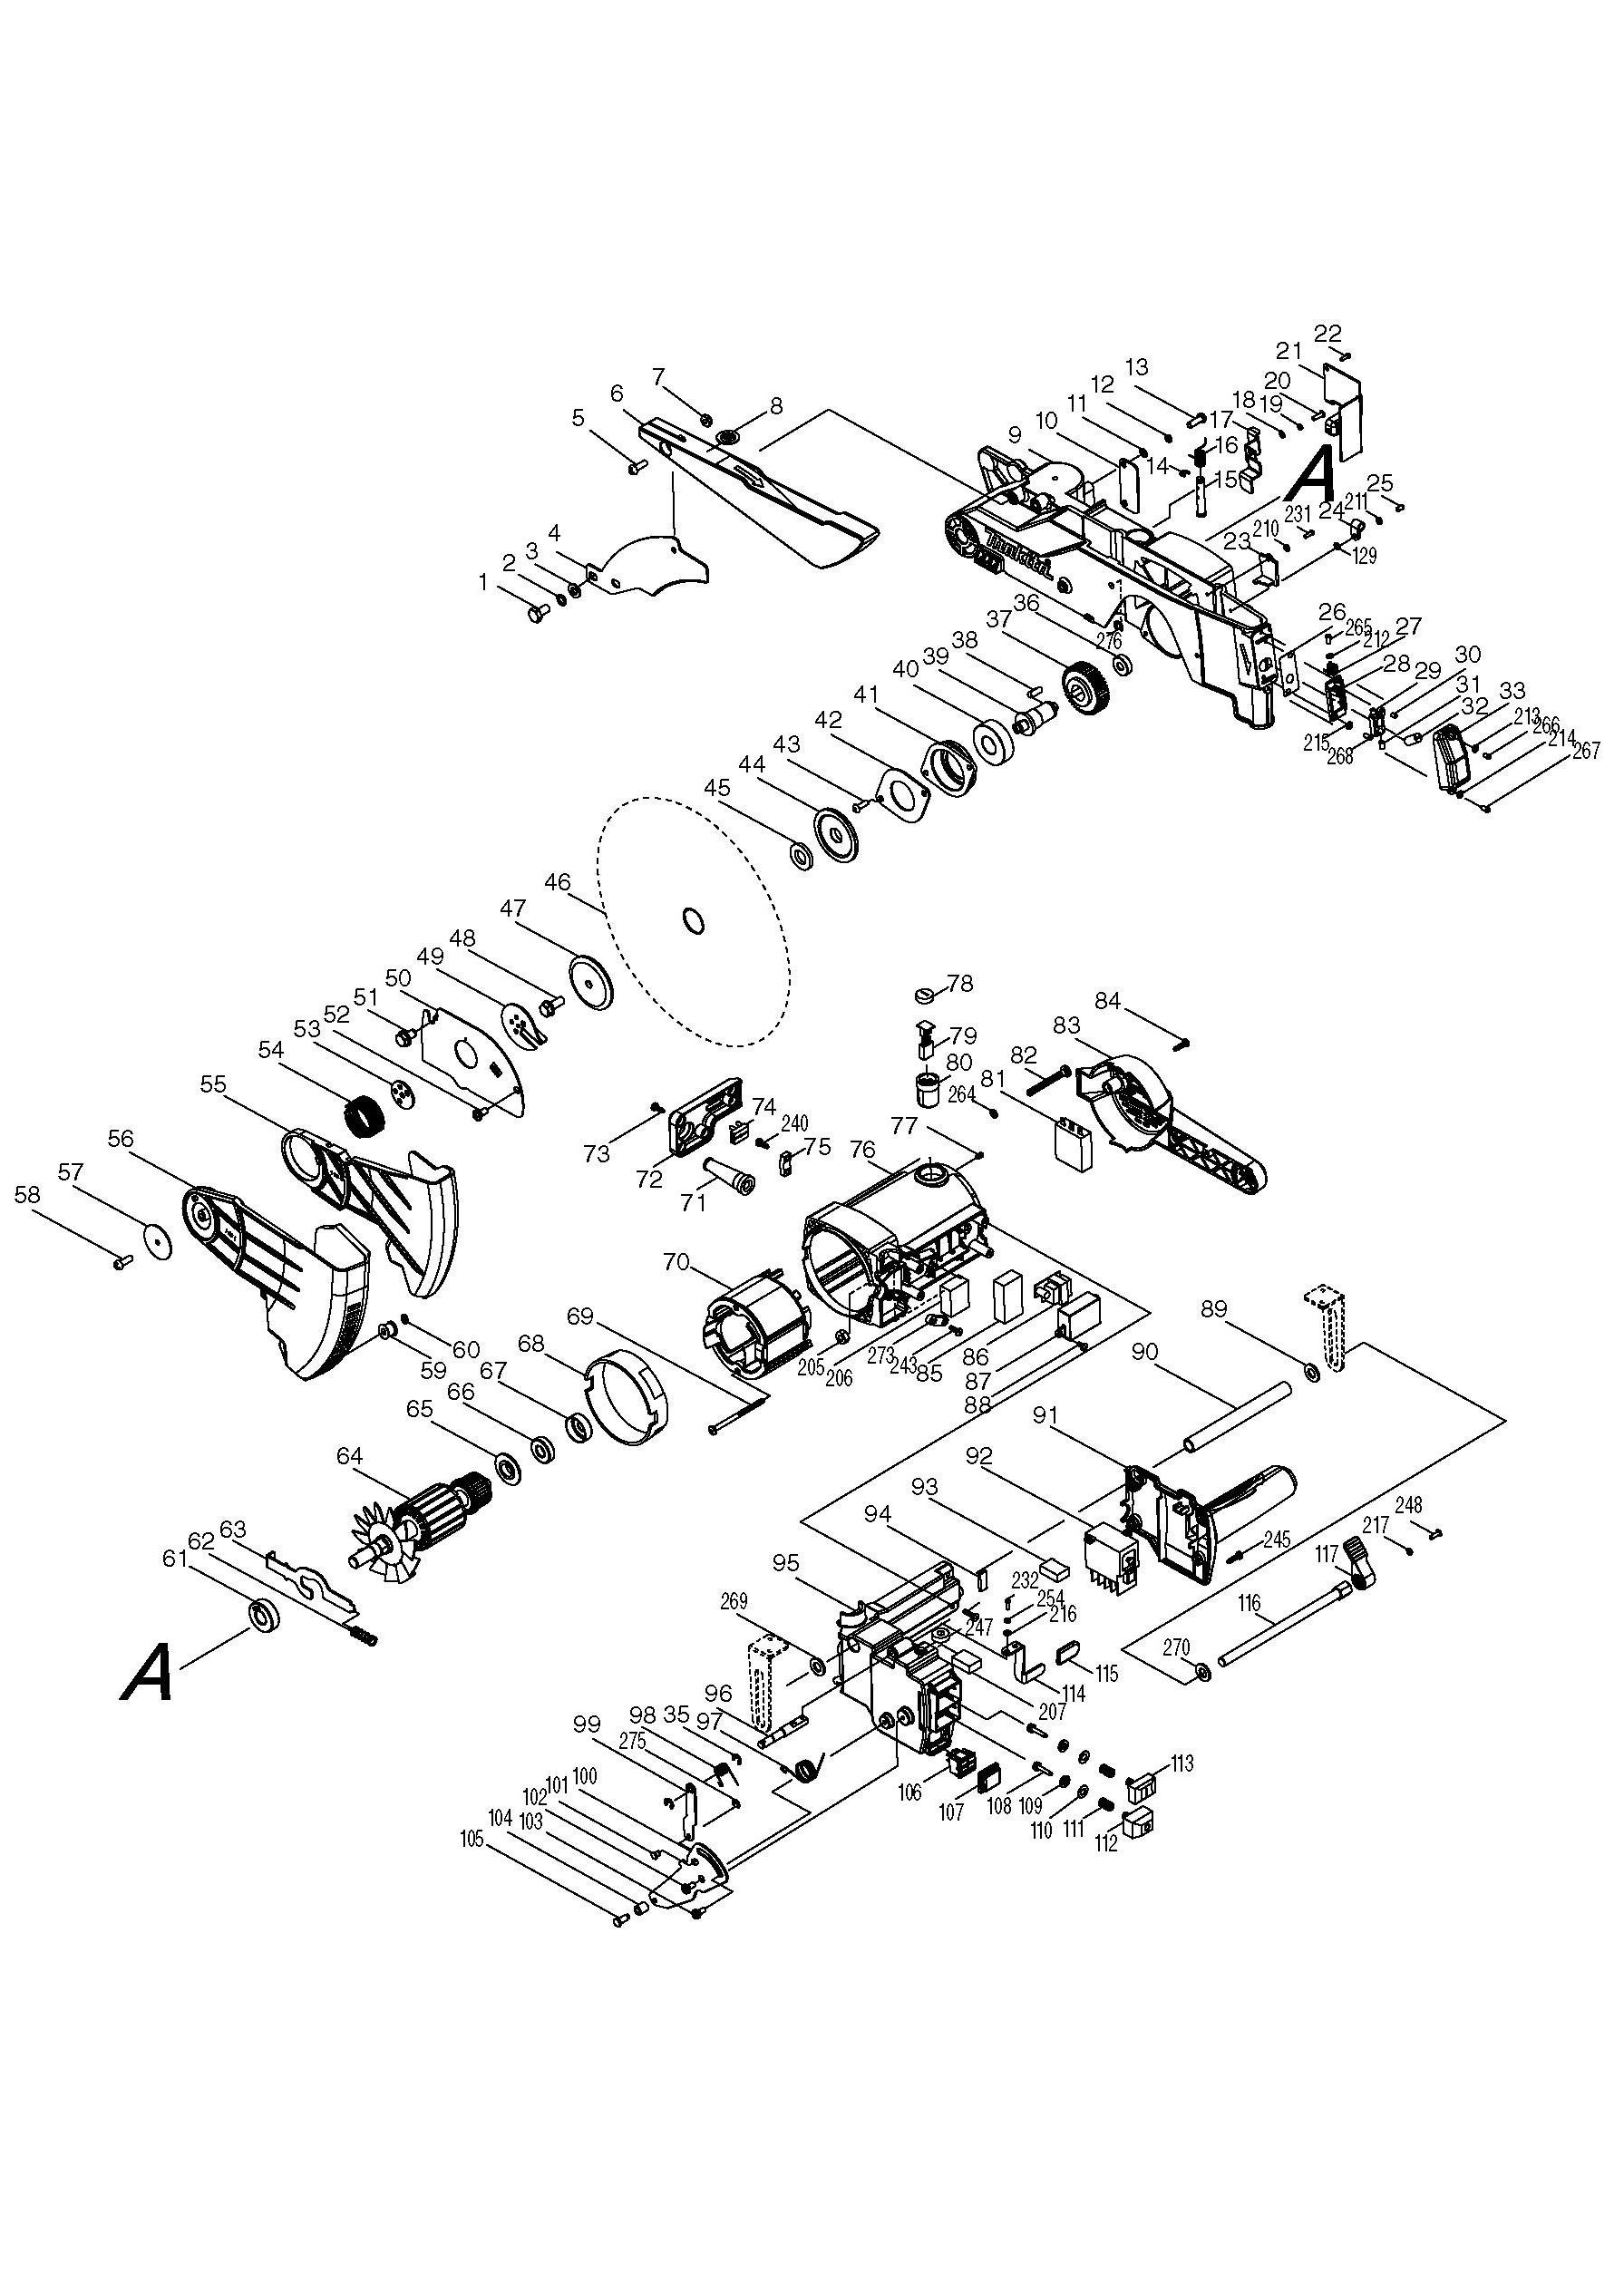 Ridgid r4510 wiring diagram wiring diagram and fuse box ridgid table saw switch wiring diagram also r4510 switch wiring diagram together with makita wiring diagrams keyboard keysfo Choice Image